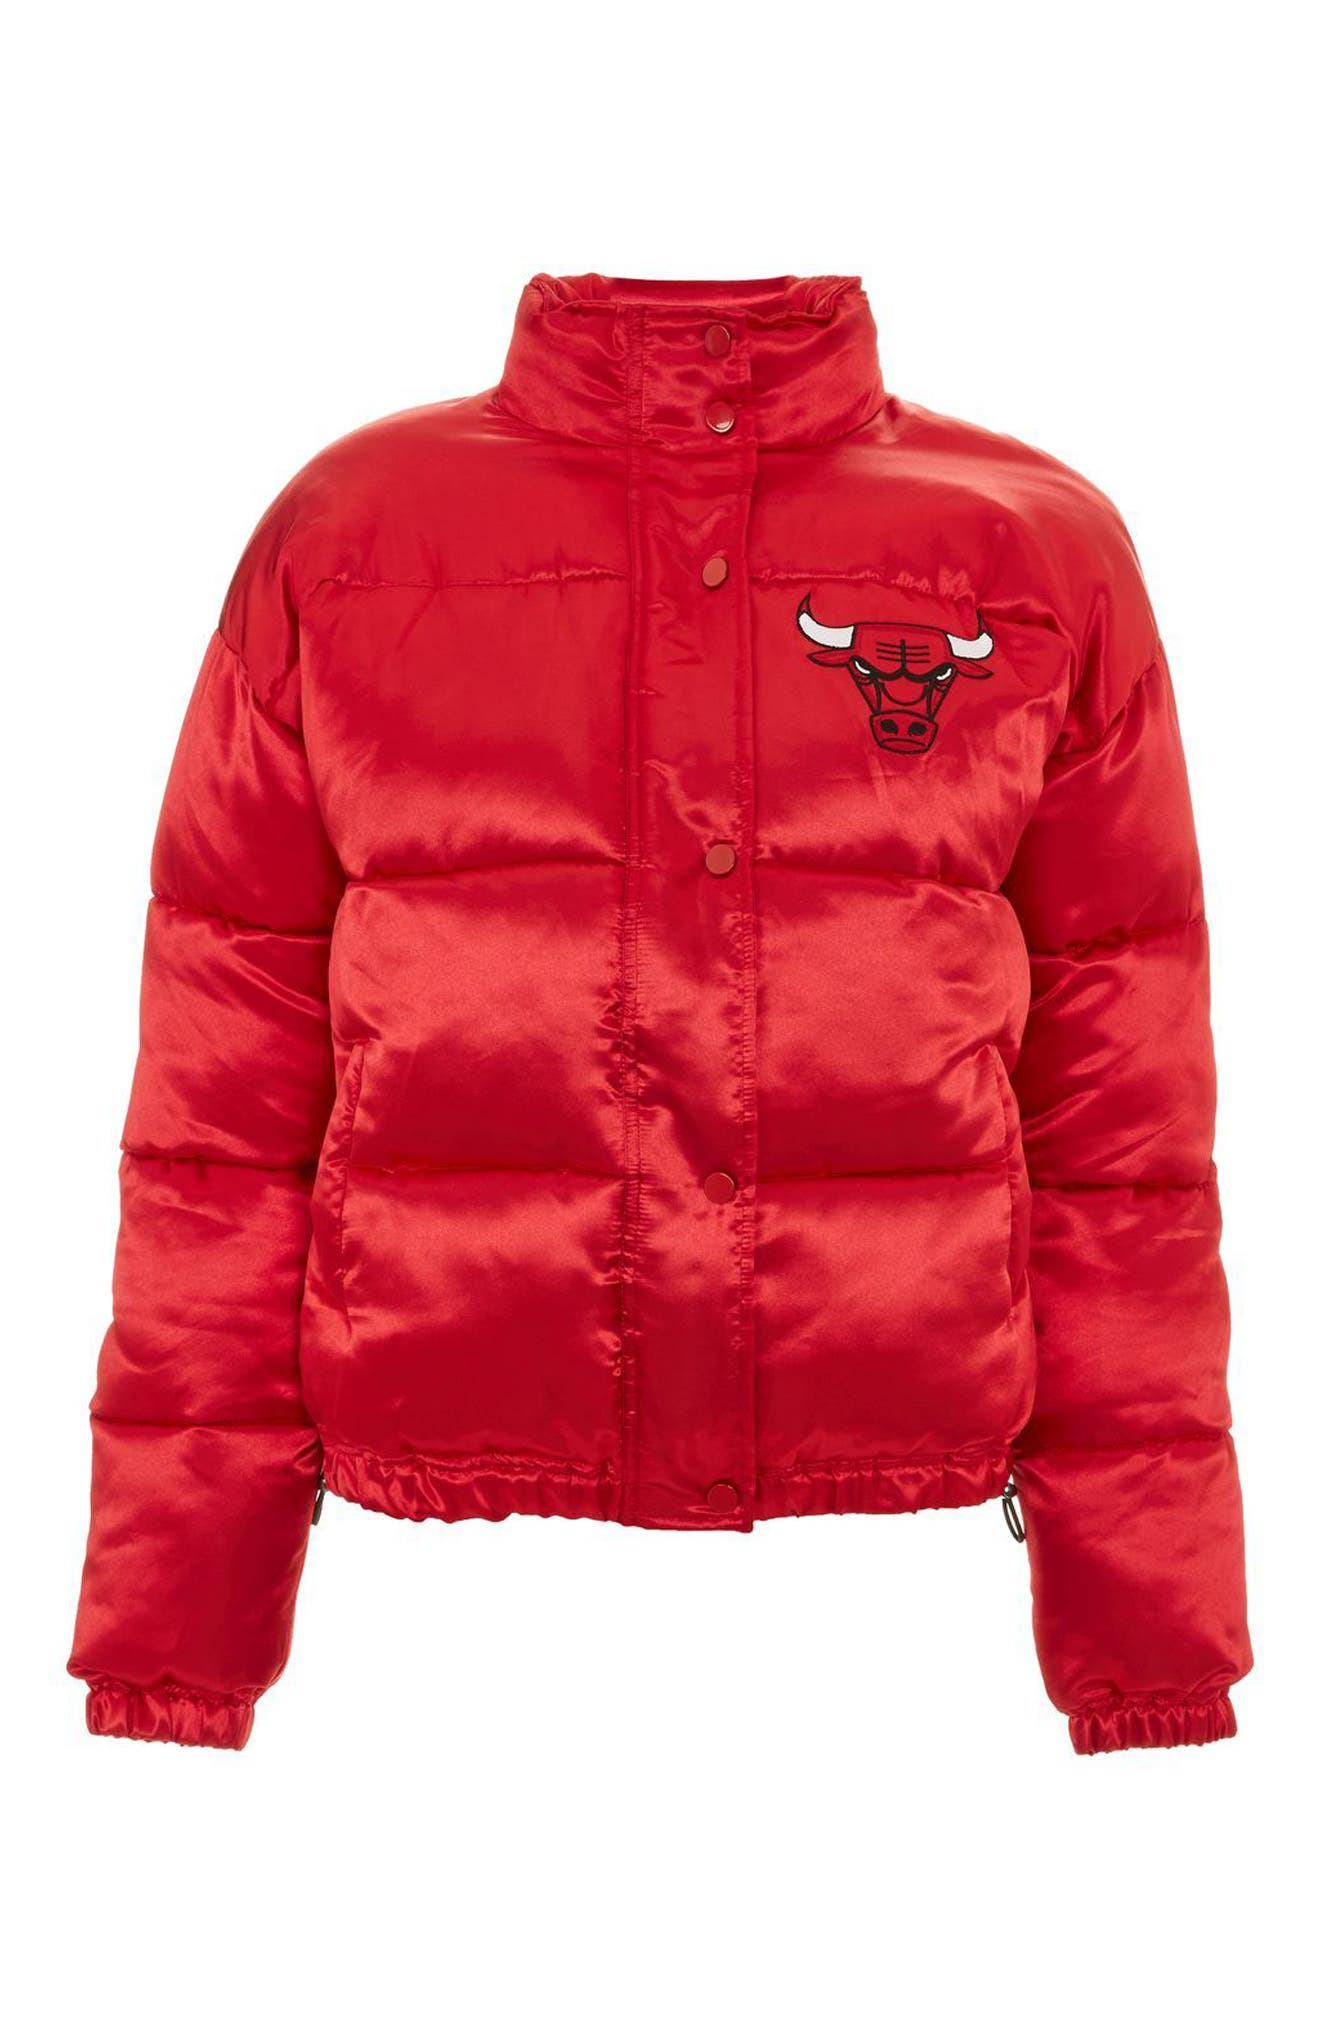 Alternate Image 1 Selected - Topshop x UNK Chicago Bulls Puffer Jacket